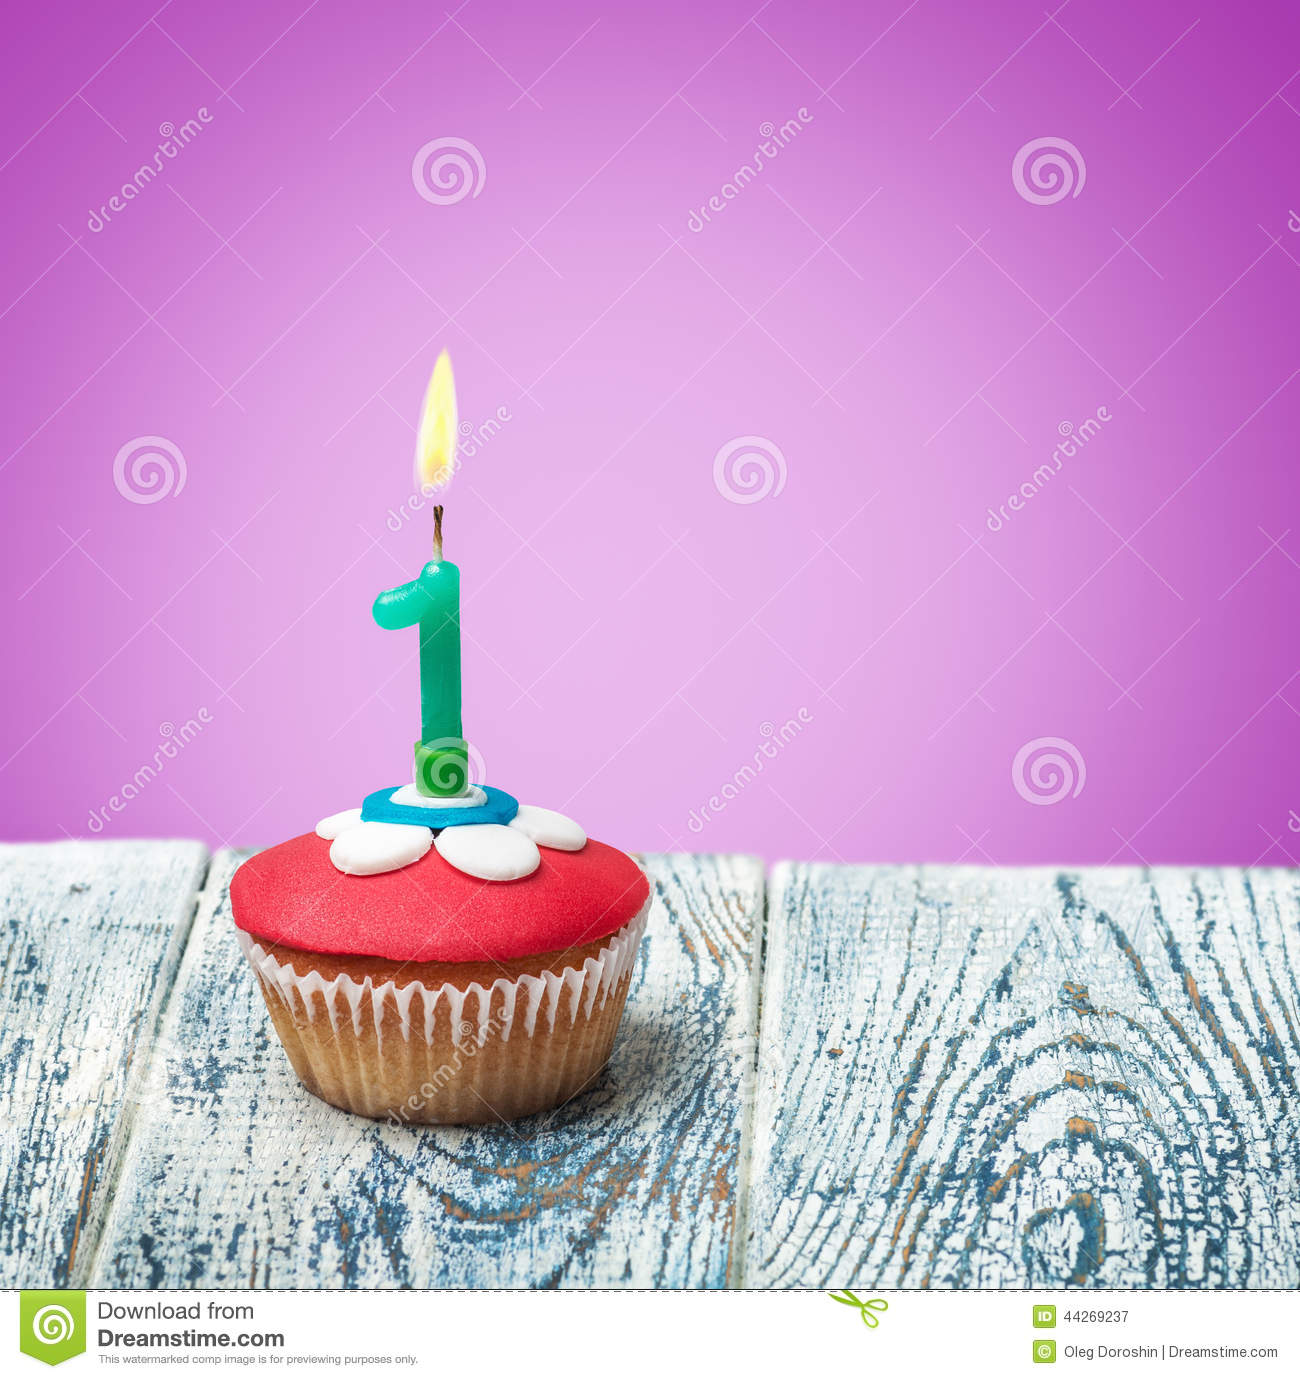 Cupcake With Number One Stock Photo - Image: 44269237